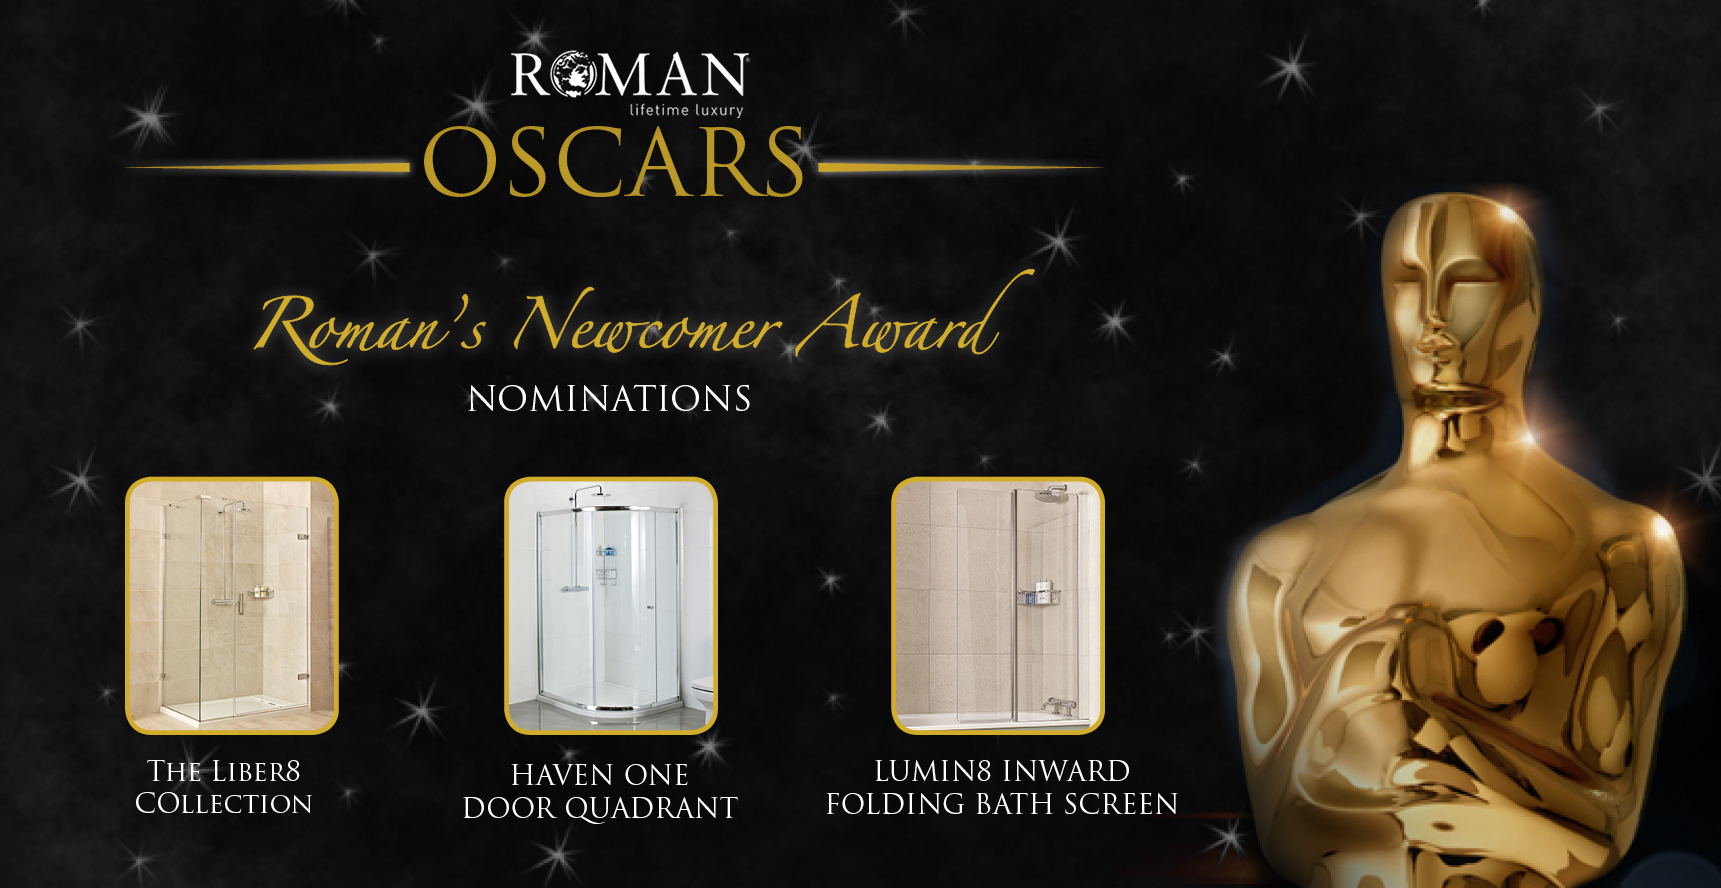 The Oscars at Roman